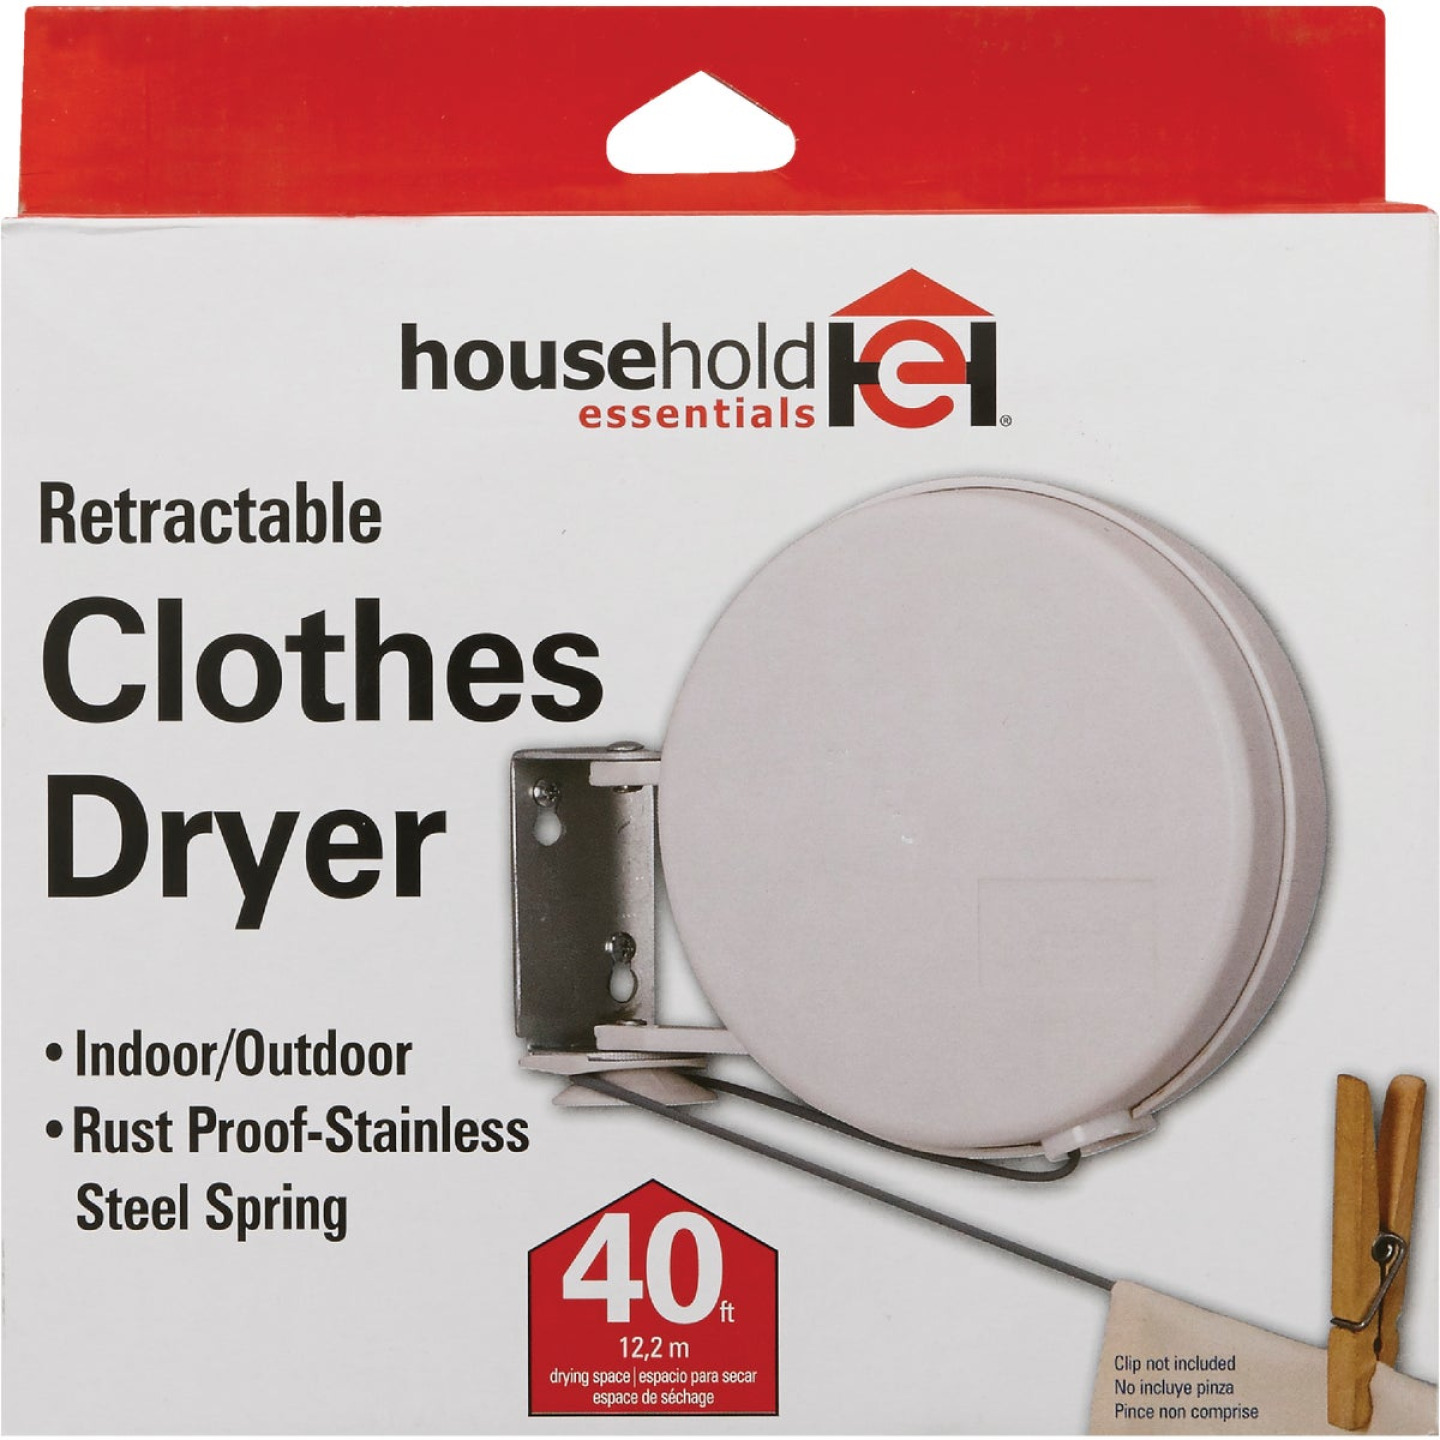 Household Essentials Sunline 40 Ft. 75 to 100 Lb. Capacity Plastic Retractable Clothesline Image 2